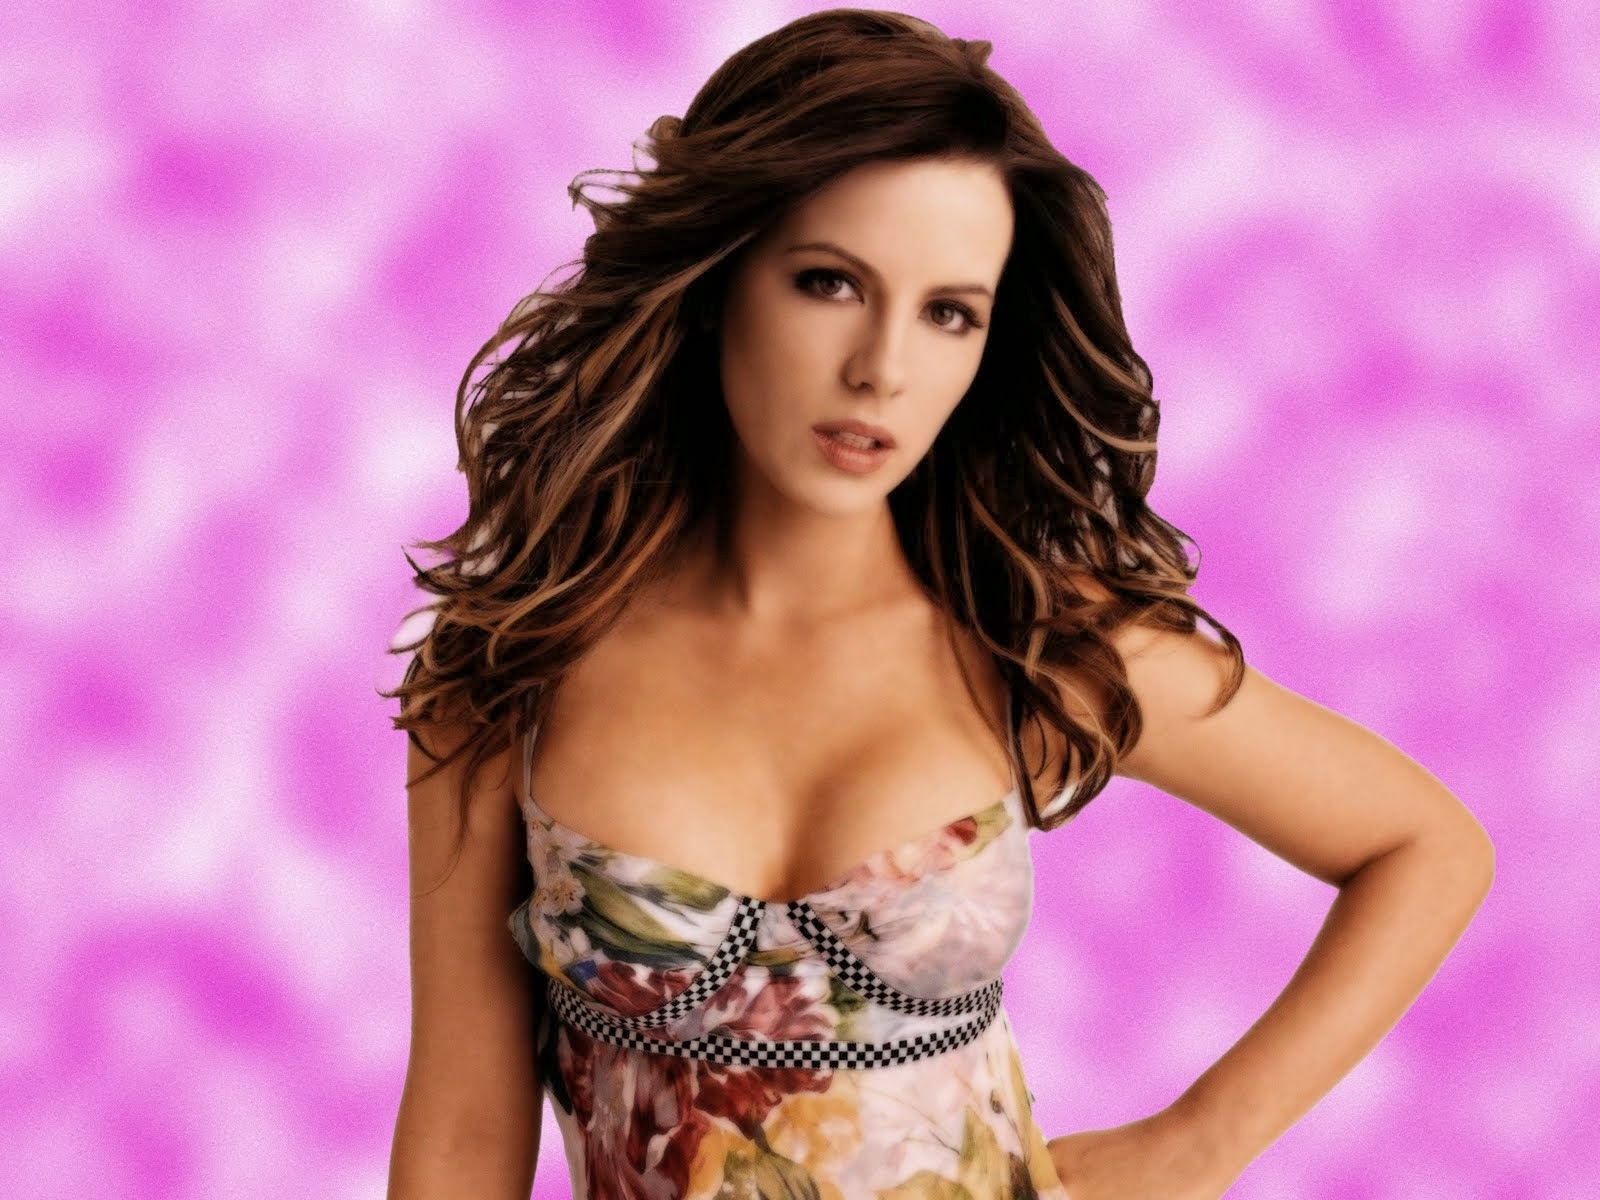 kate beckinsale england hot and beautiful women of the